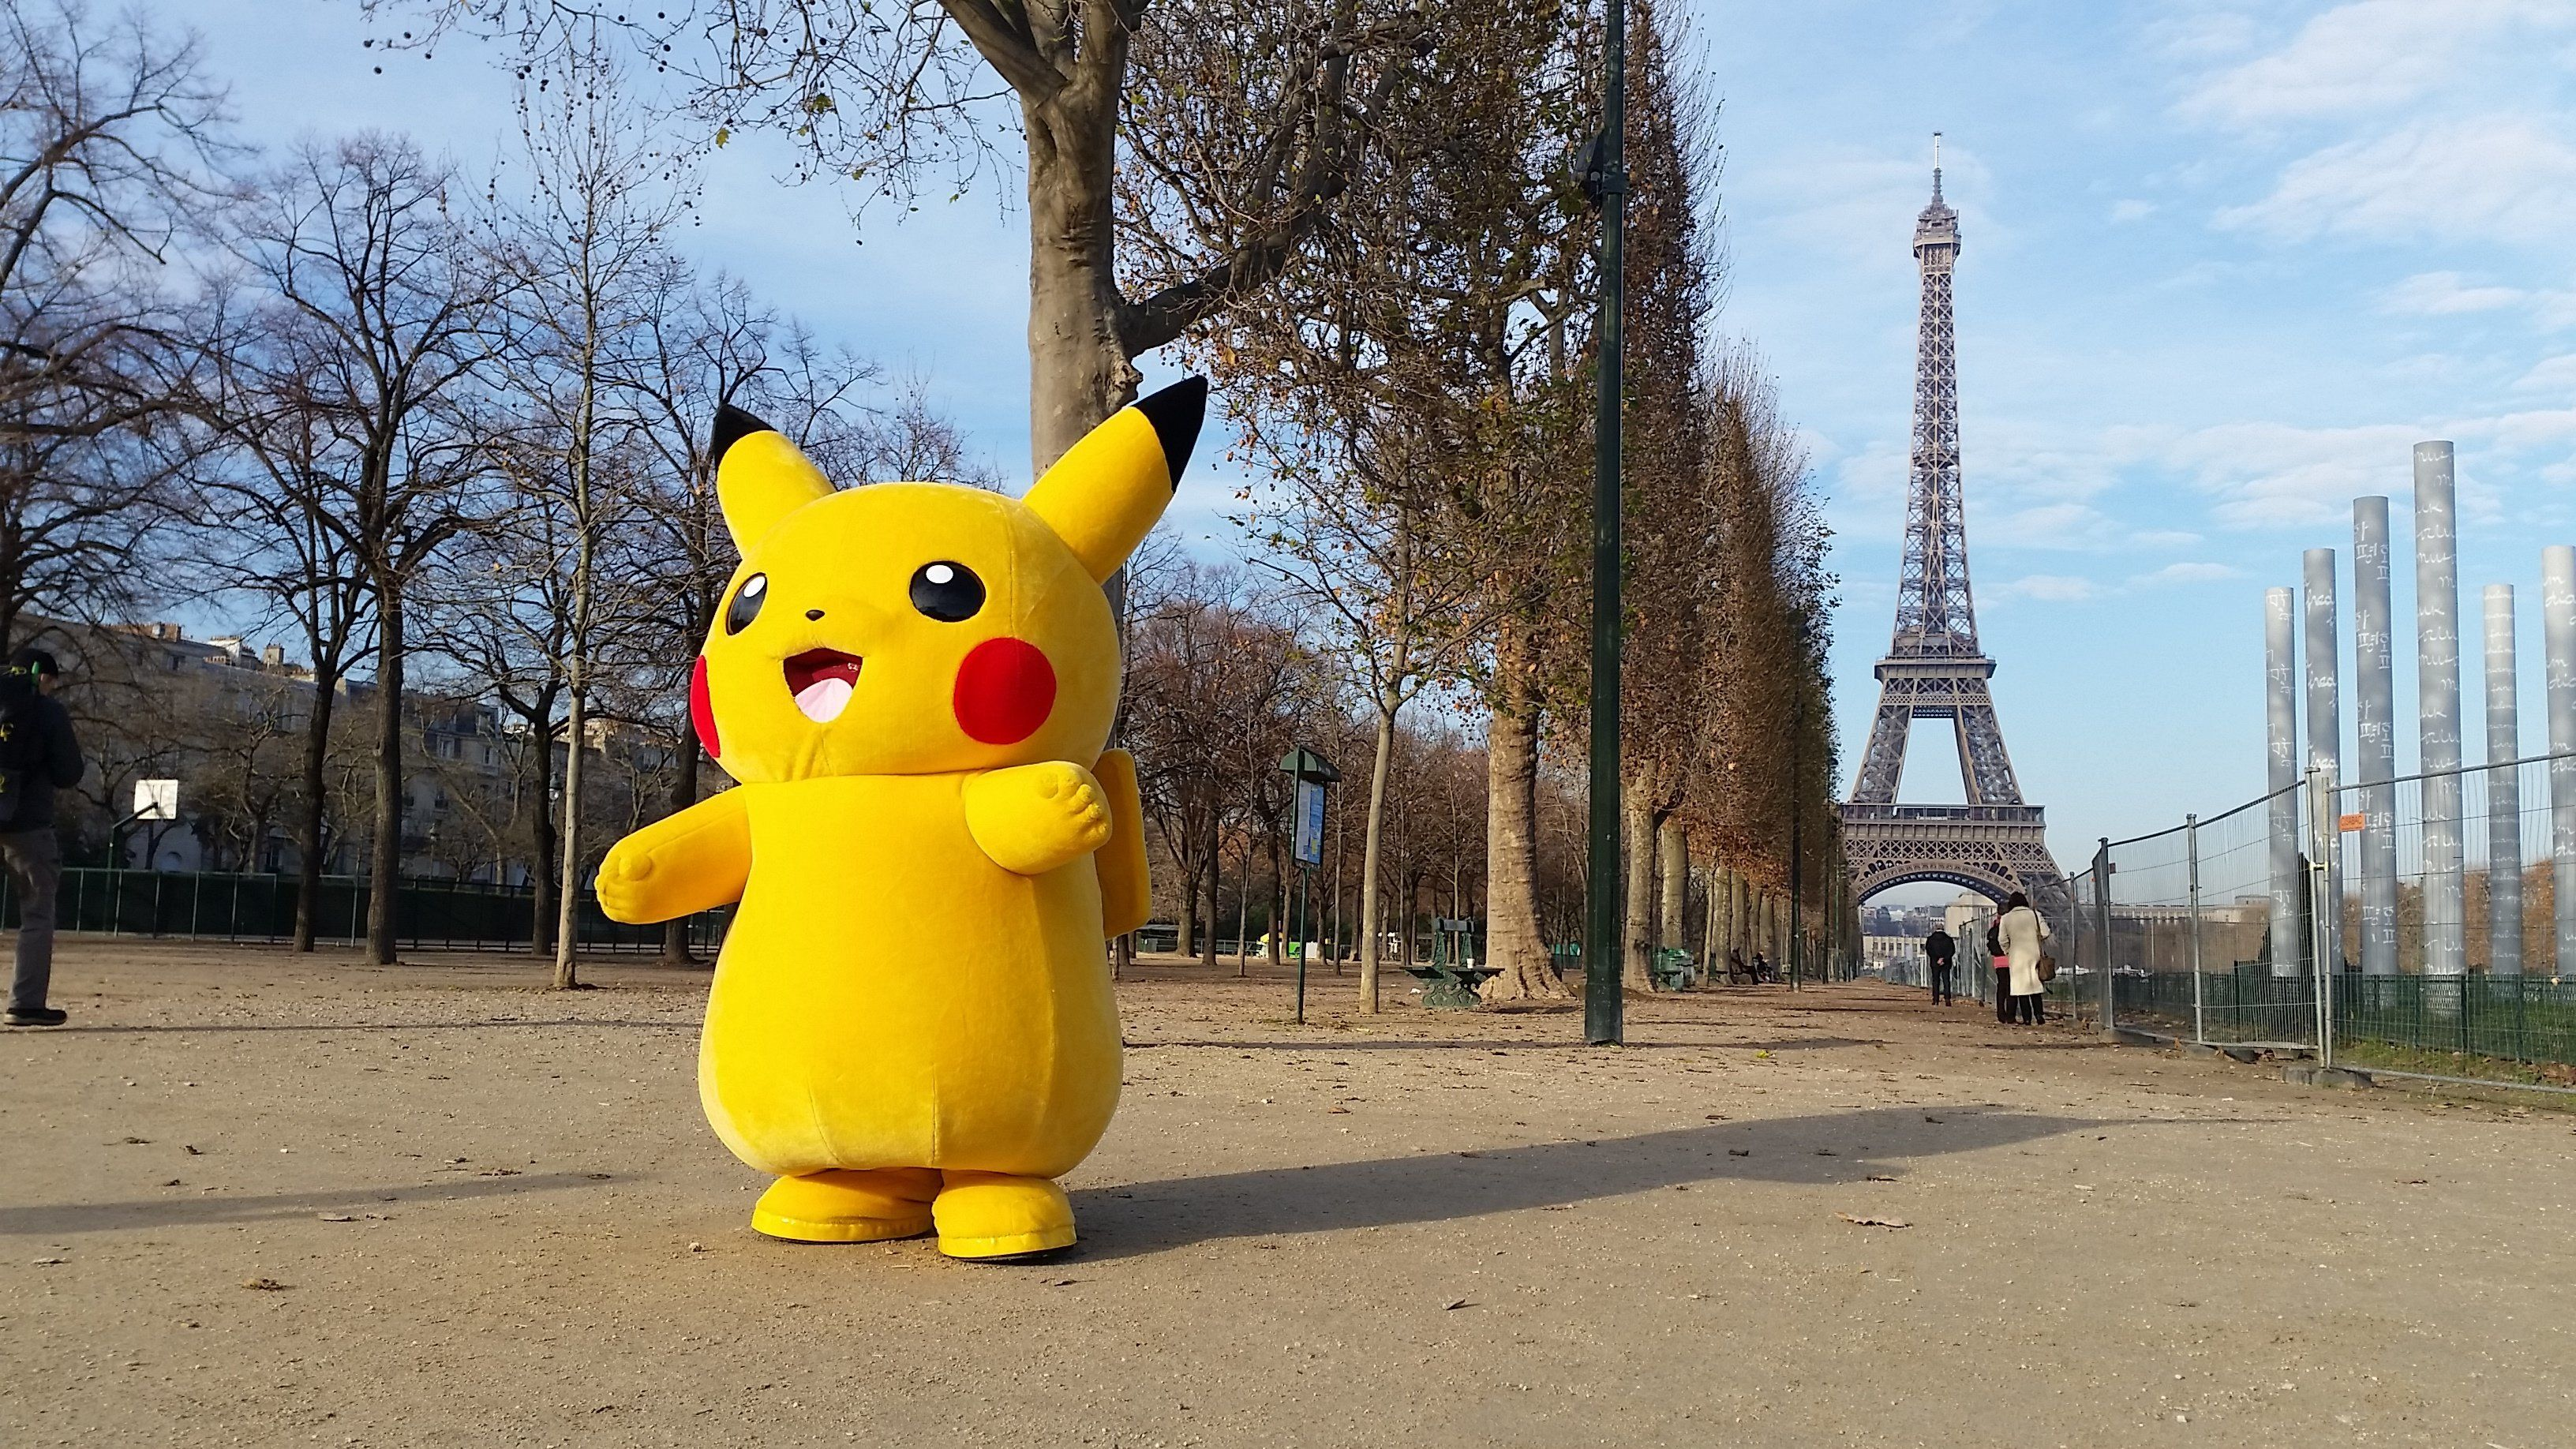 A person wearing a costume of Pikachu, a Pokemon character, walks on the Champs de Mars near the Eiffel Tower in Paris, on December 16, 2016. / AFP / Ludovic MARIN        (Photo credit should read LUDOVIC MARIN/AFP/Getty Images)